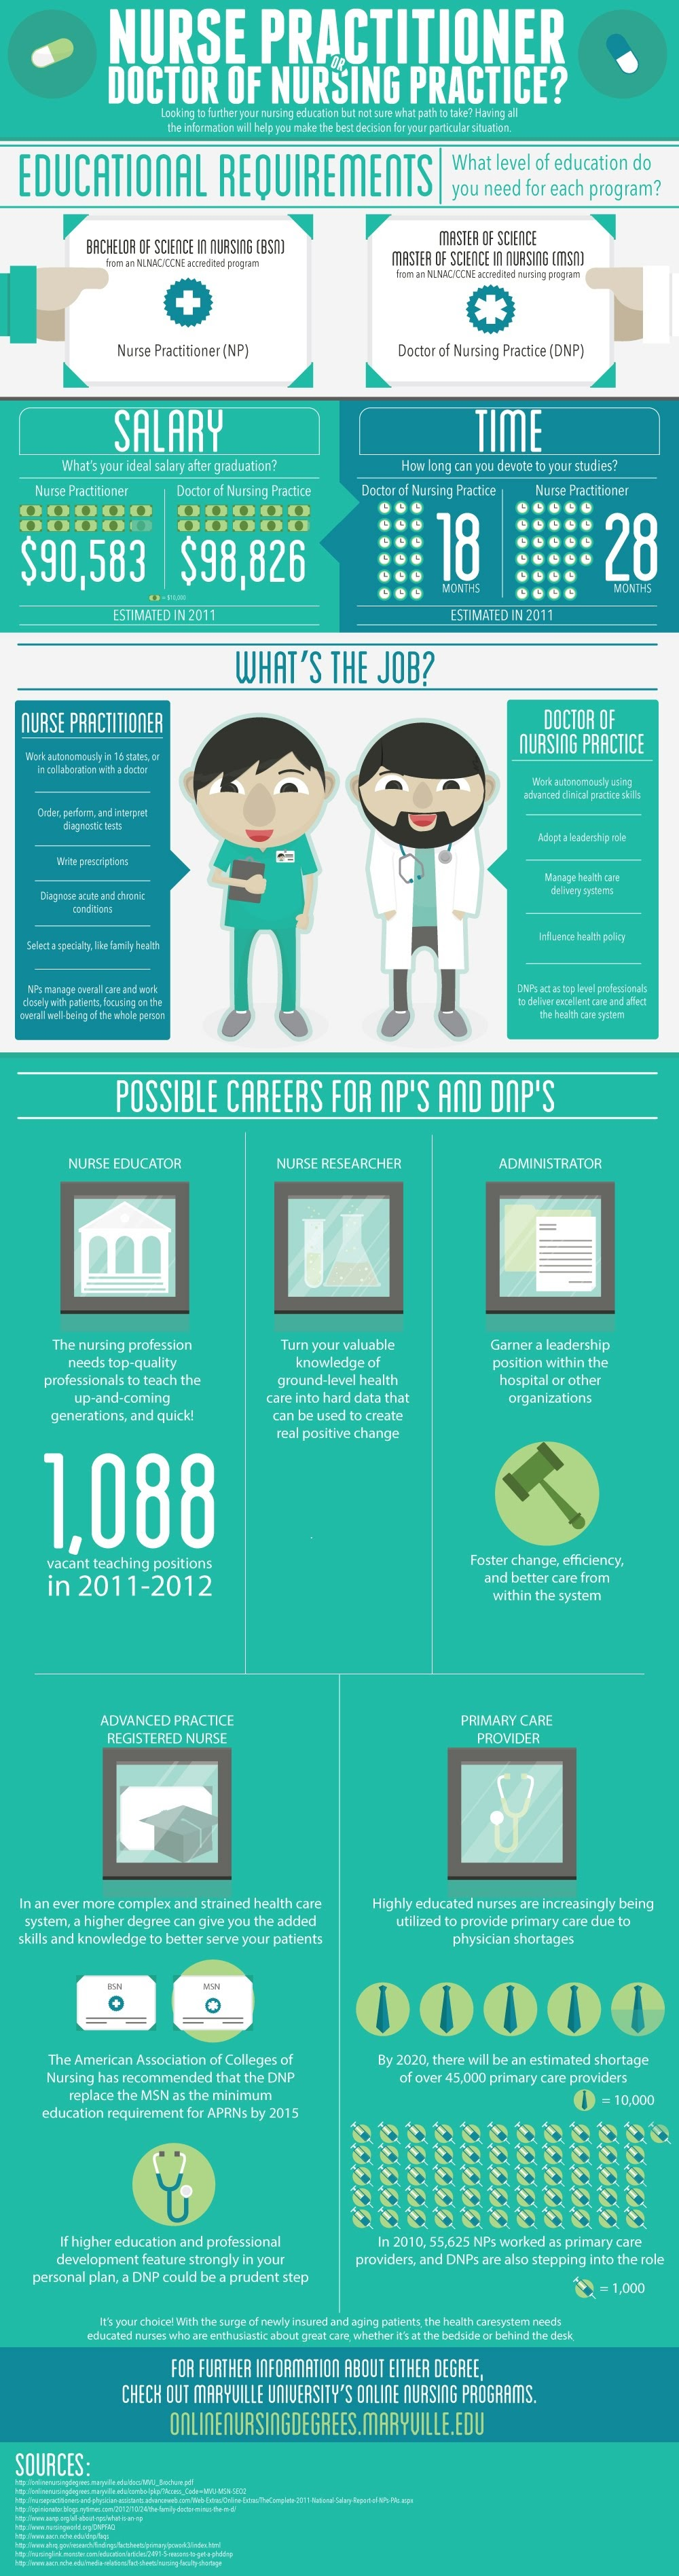 Nurse Practitioner or Doctor of Nursing Practice? #infographic